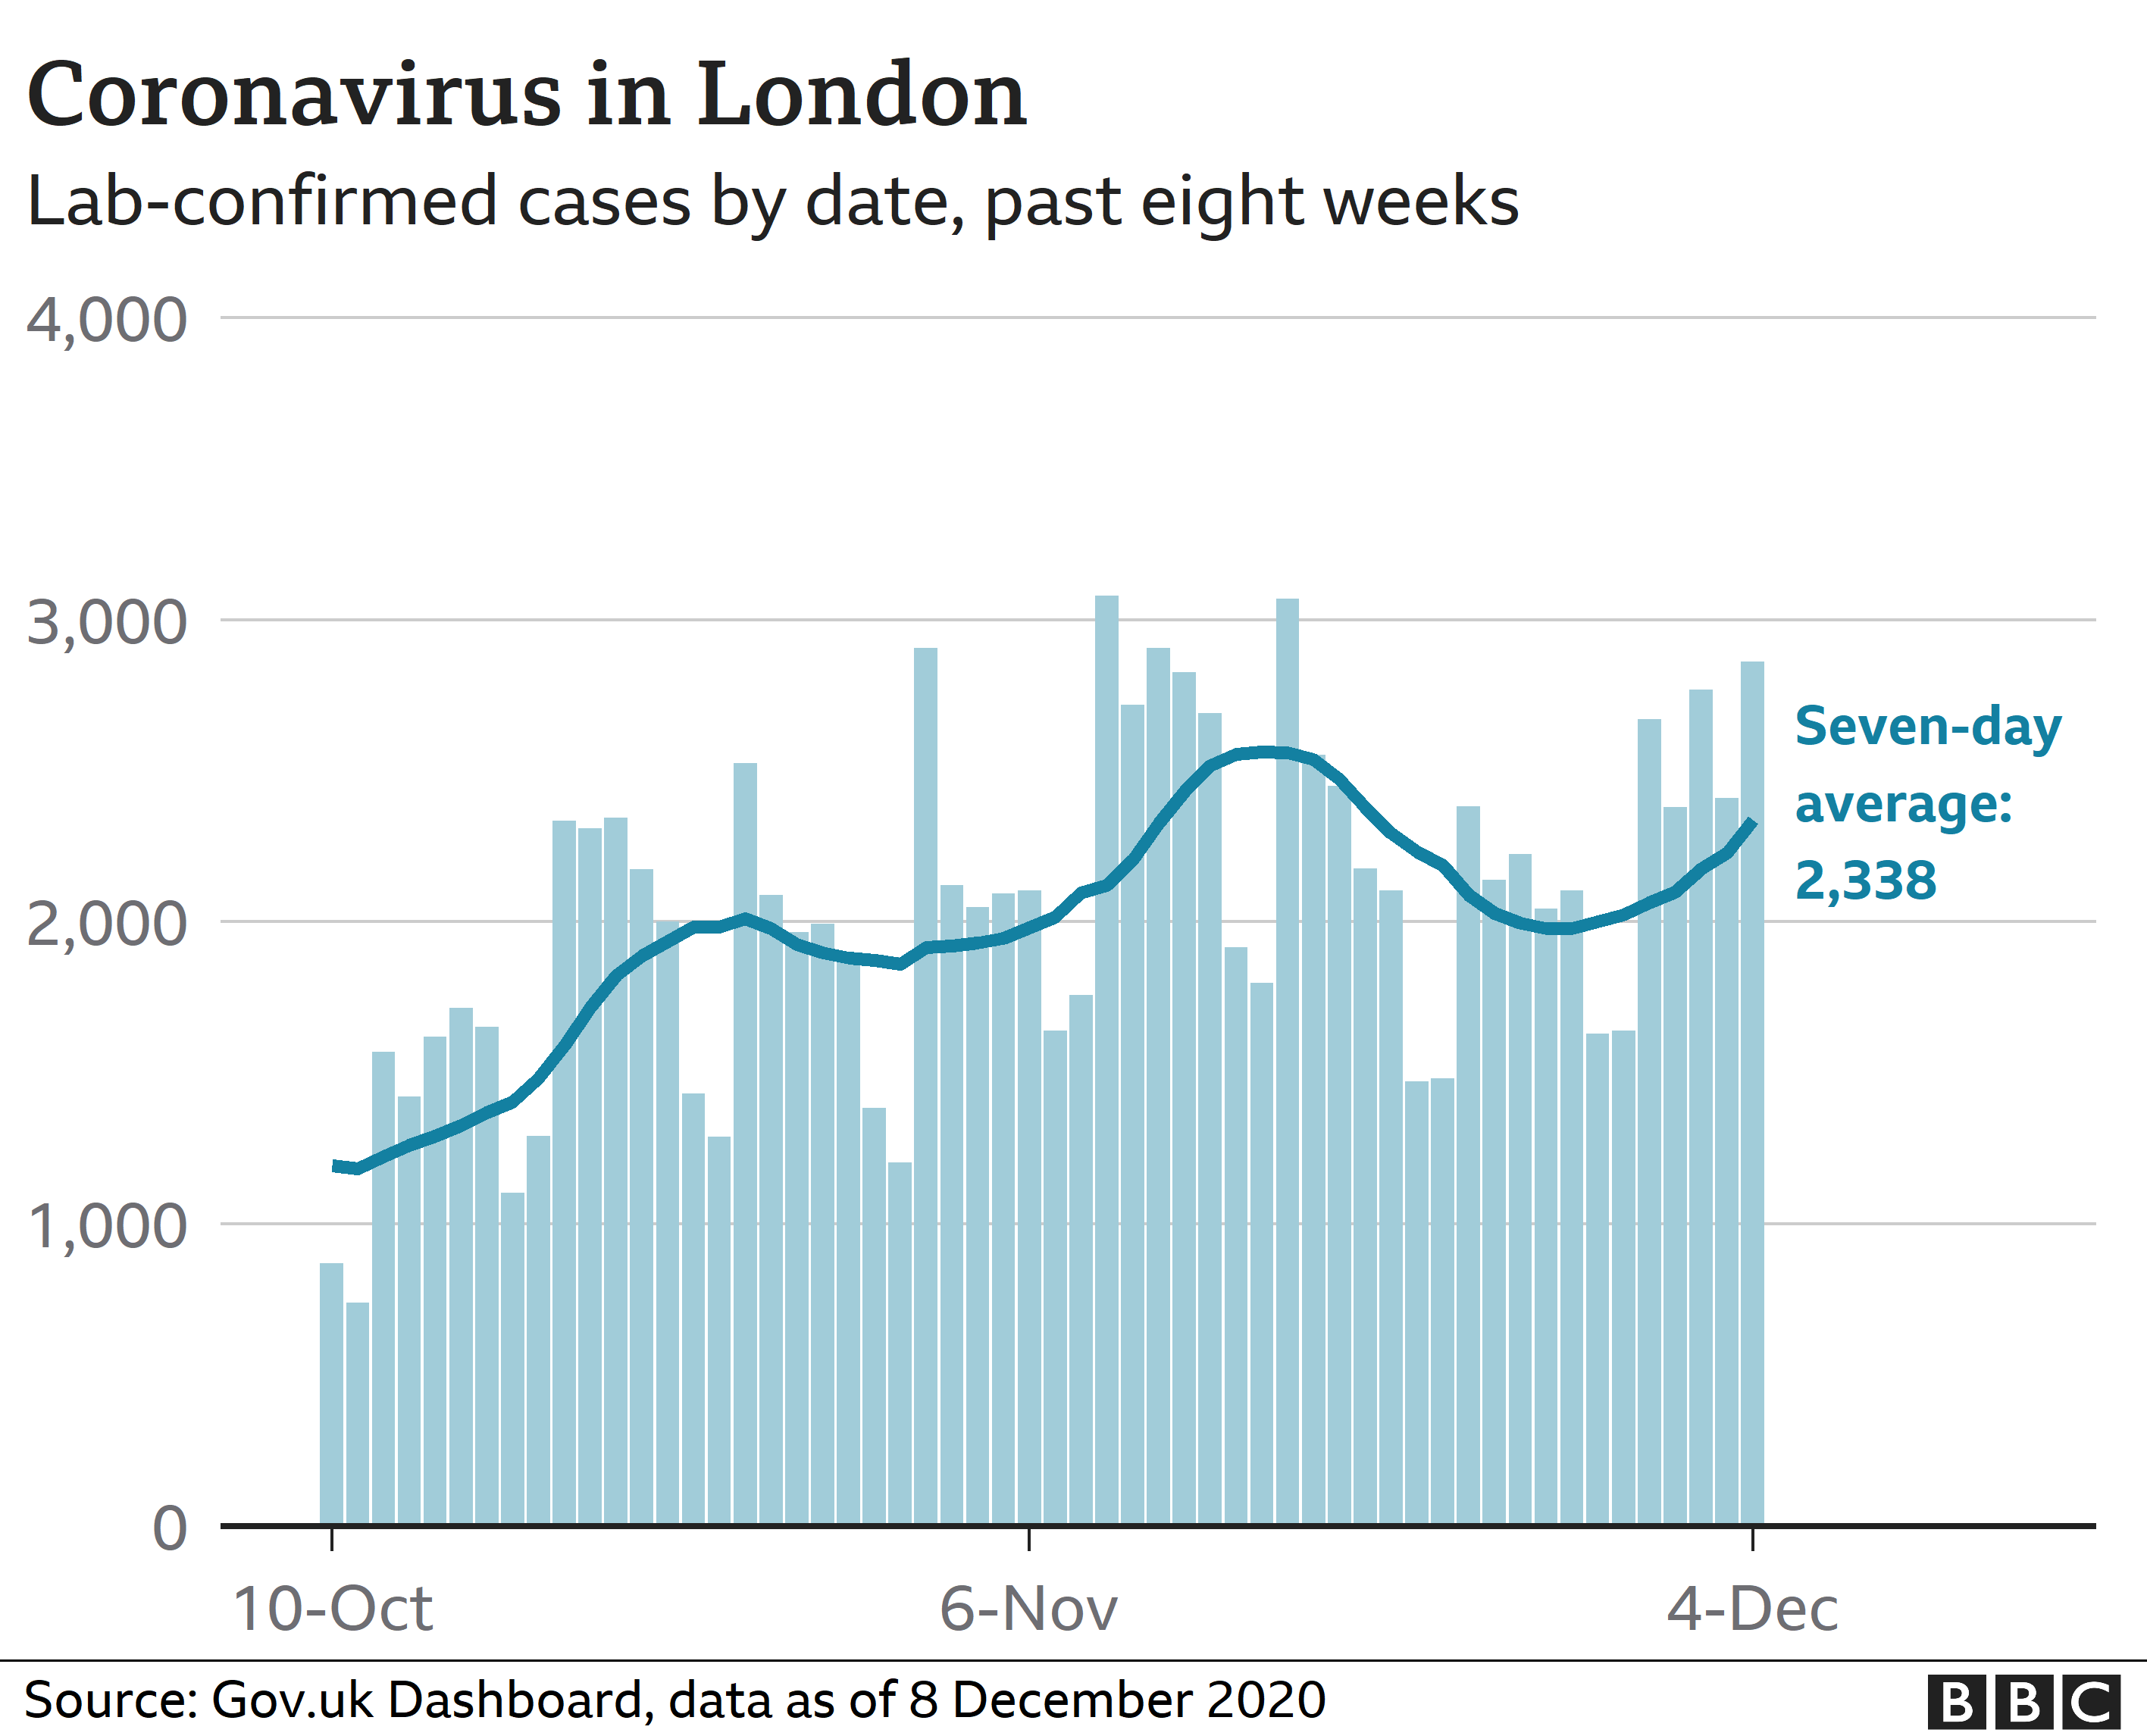 Chart showing coronavirus cases in London